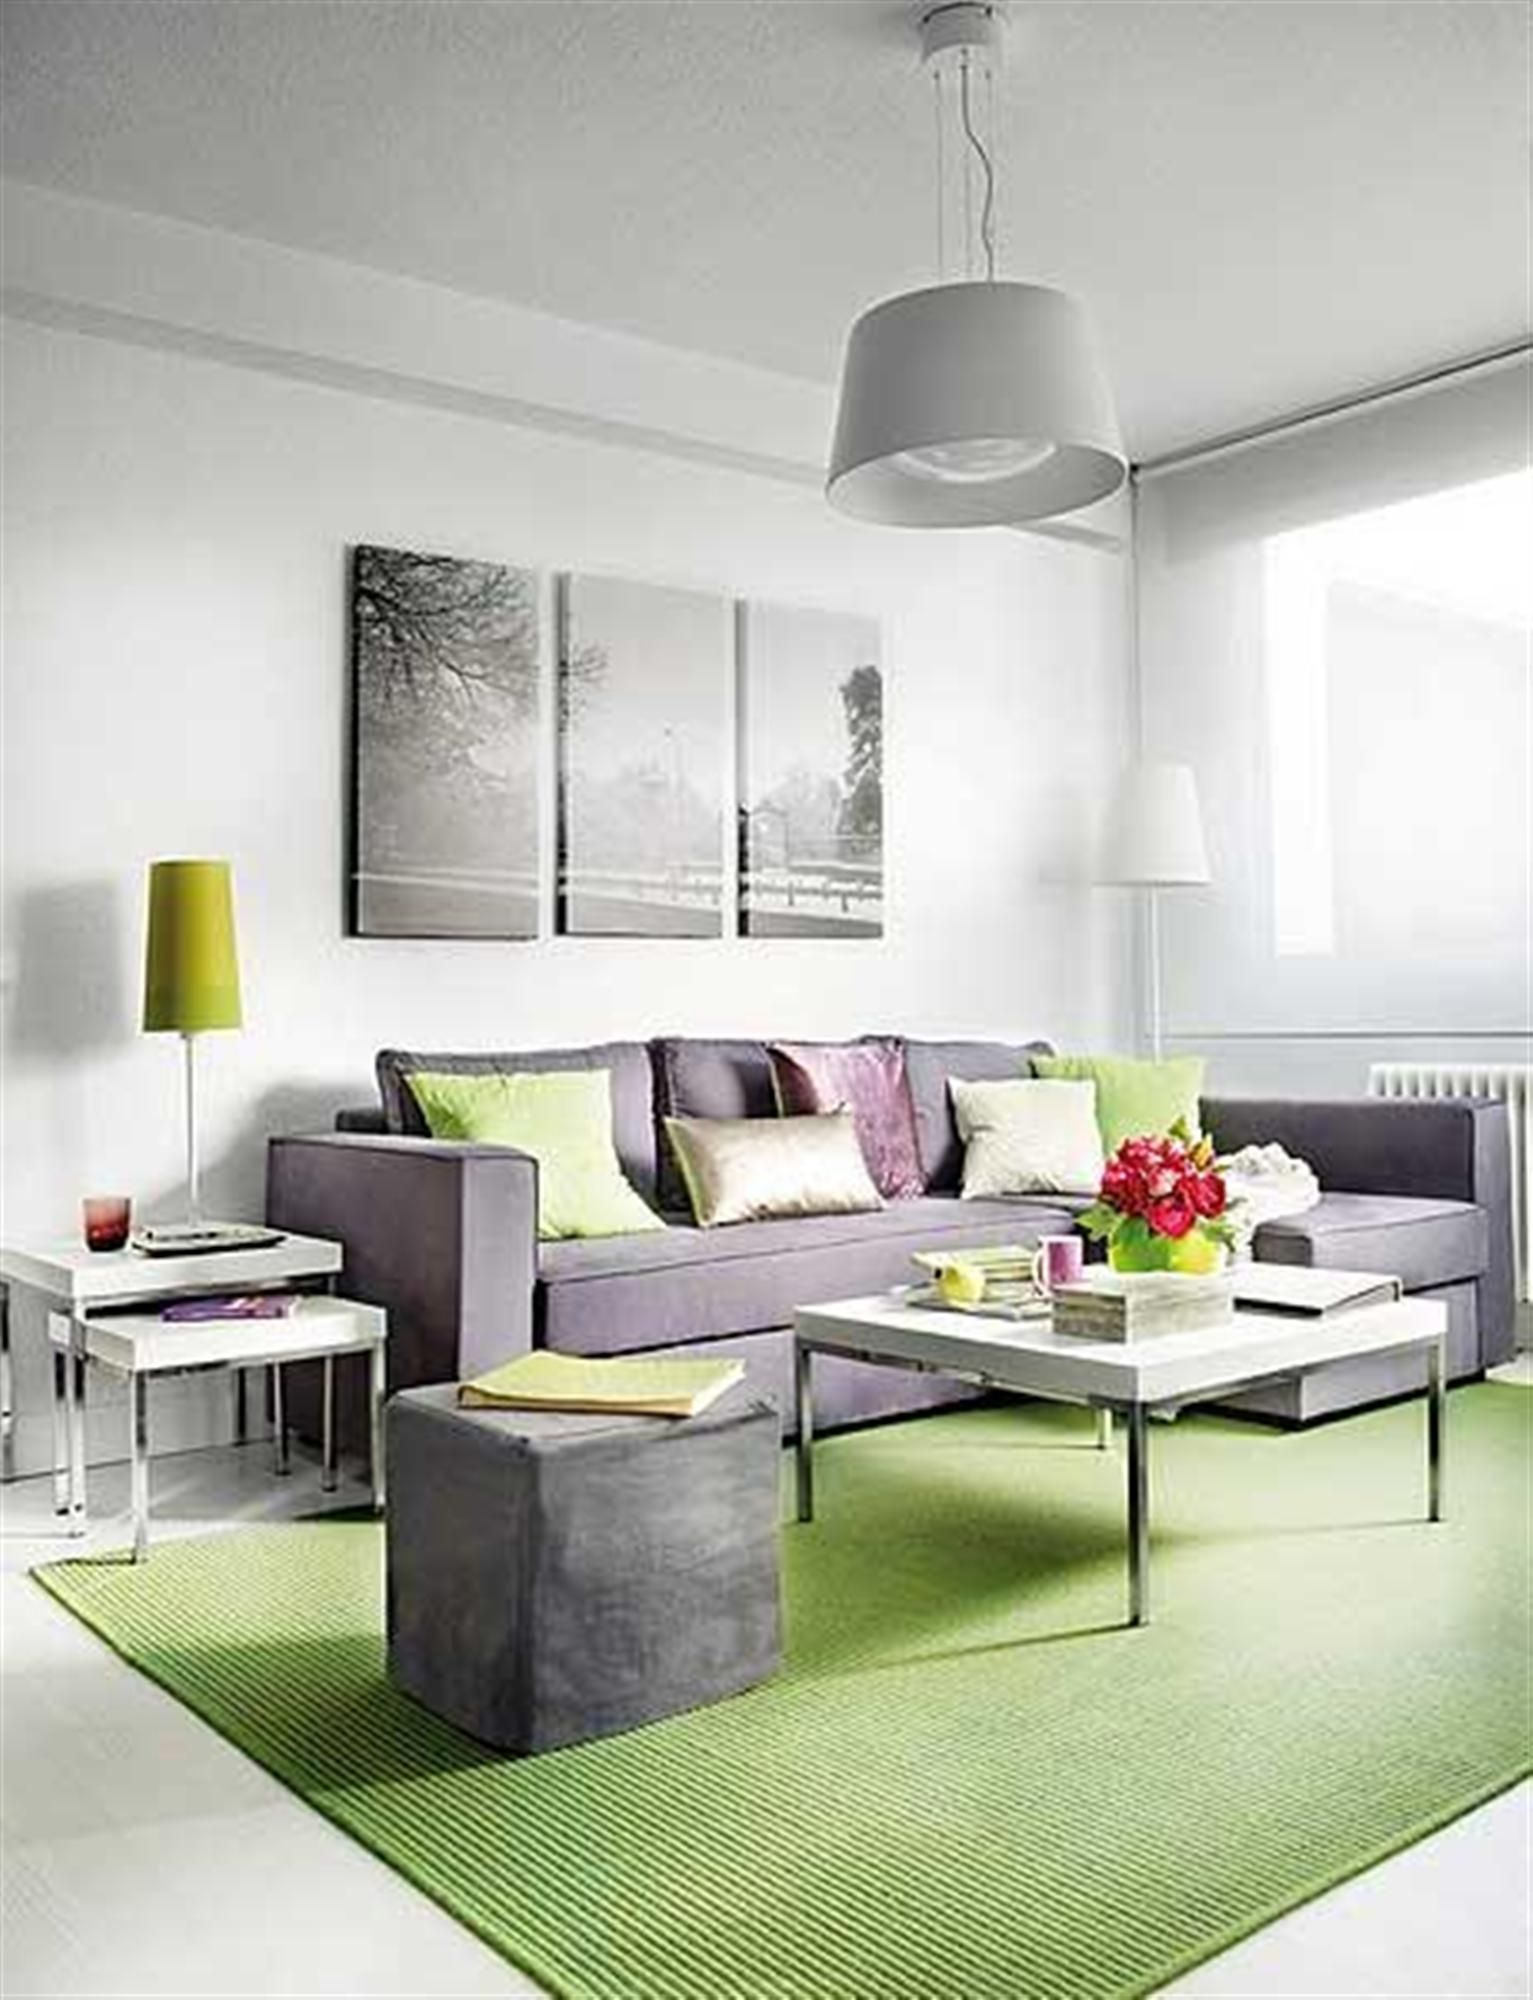 living room ideas with green carpet best places to get furniture awesome interior design and modern grape sofa also amazing large simple table small space